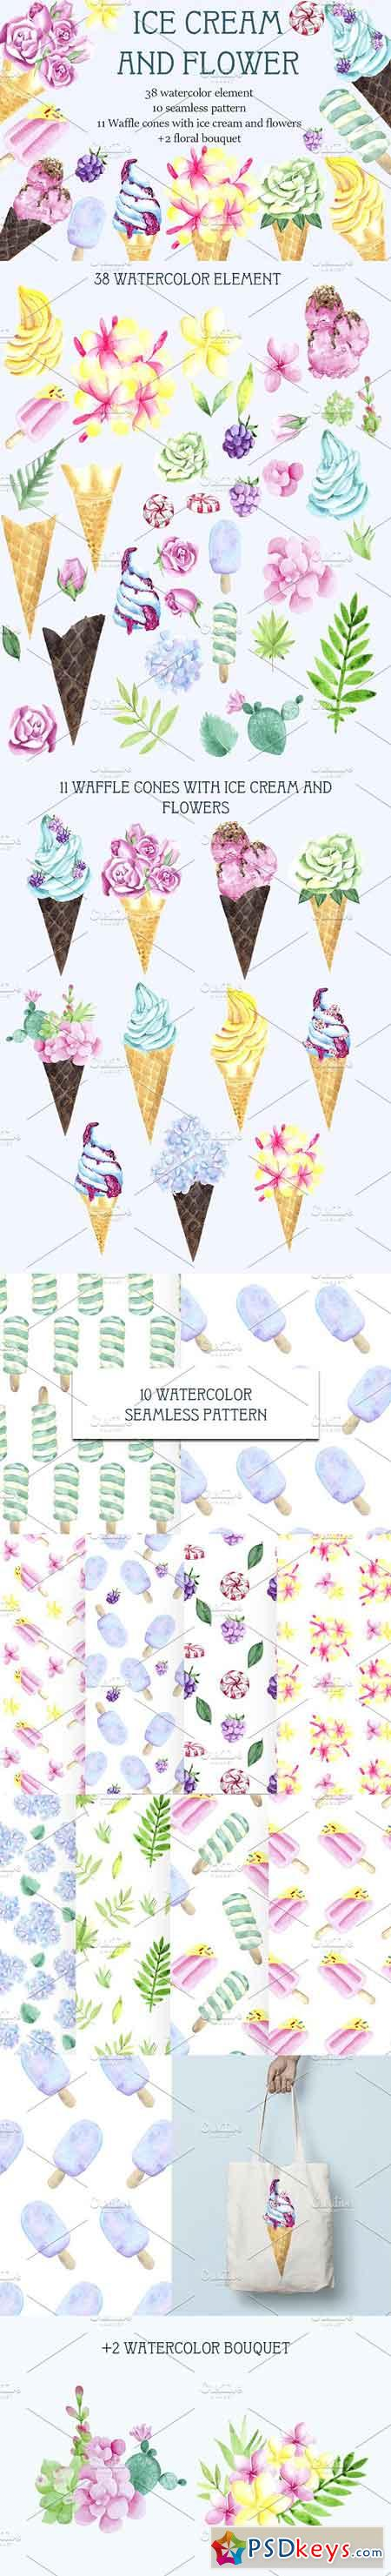 Ice cream and flower Watercolor set 2533048